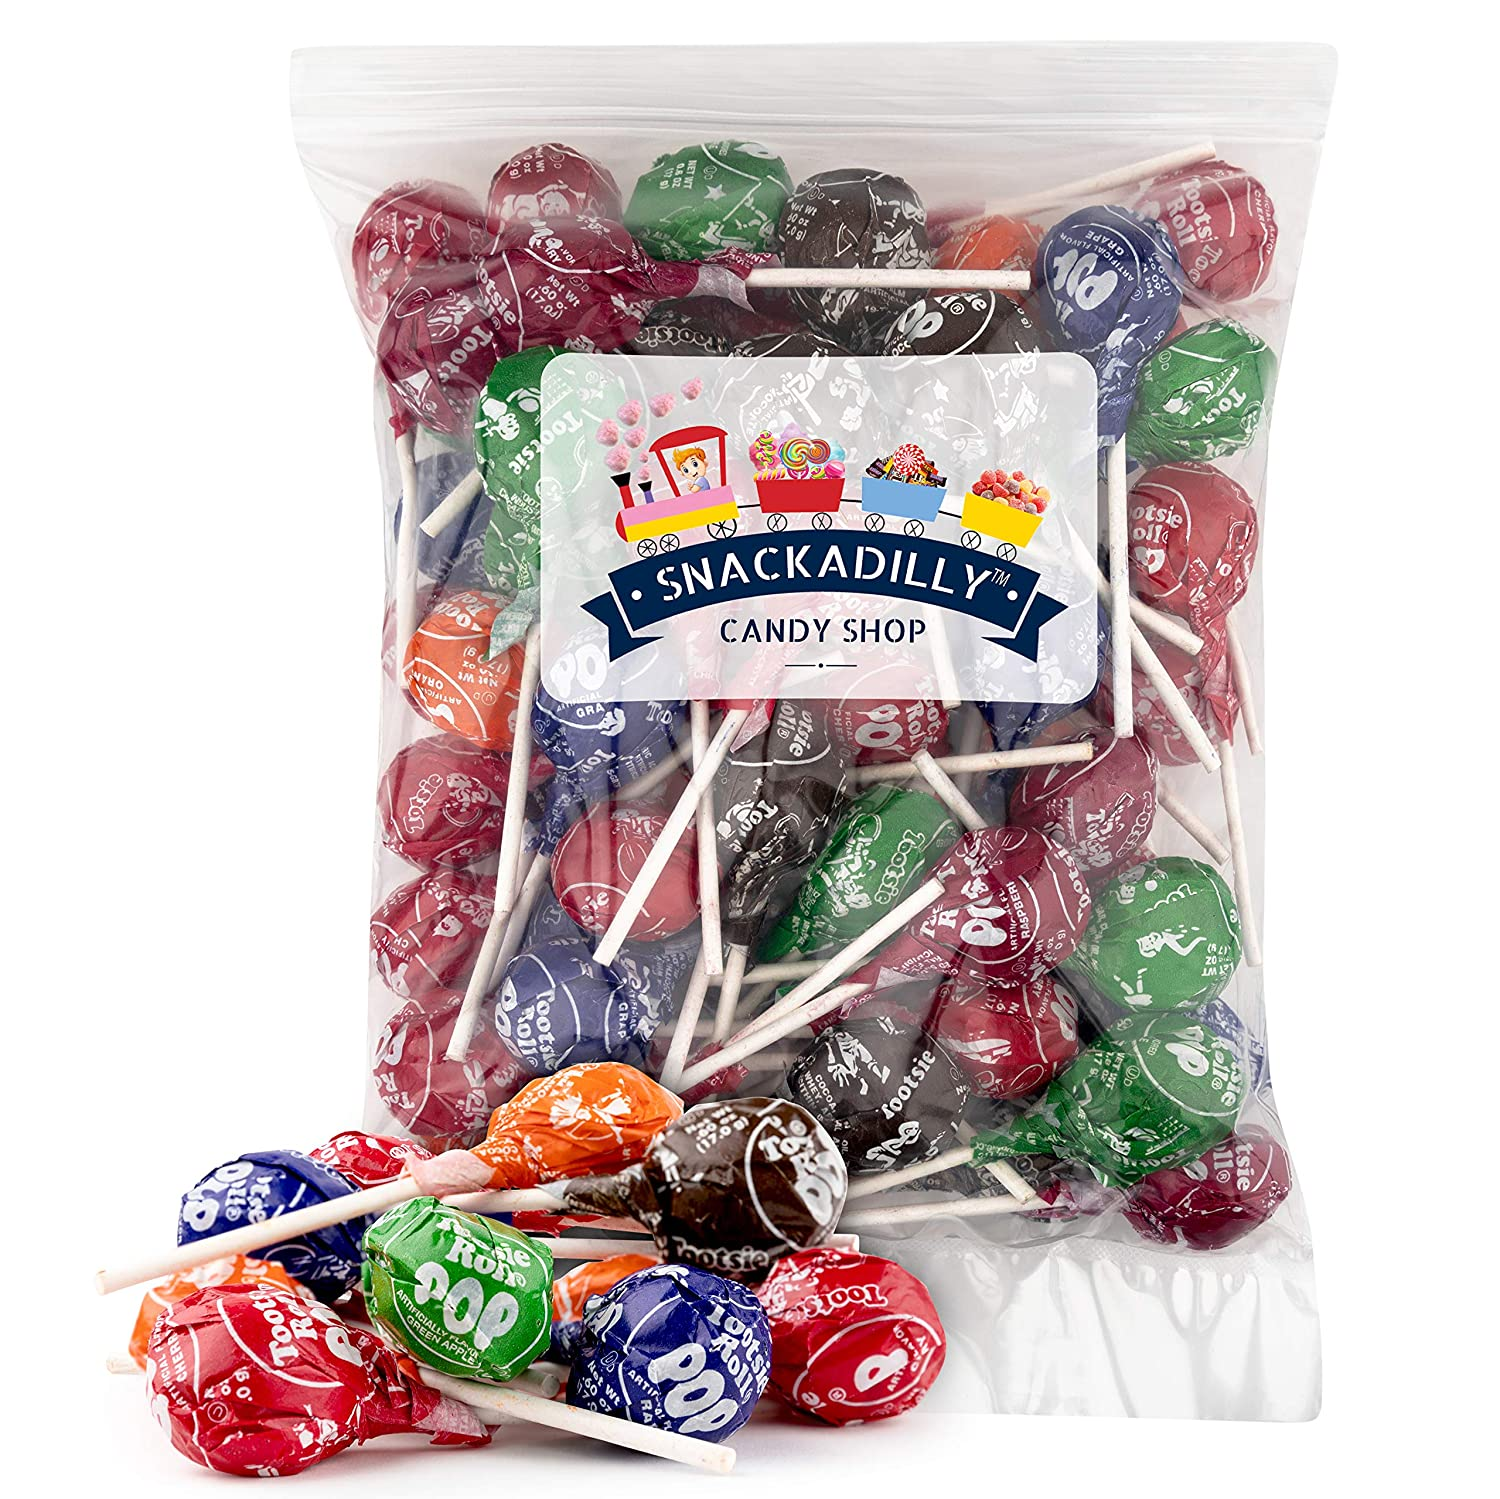 Tootsie Pops 2lbs. of Assorted Fruit Flavors - Original Five-Flavor Mix-Chocolate, Cherry, Orange, Grape and Raspberry. - Packed by Snackadilly